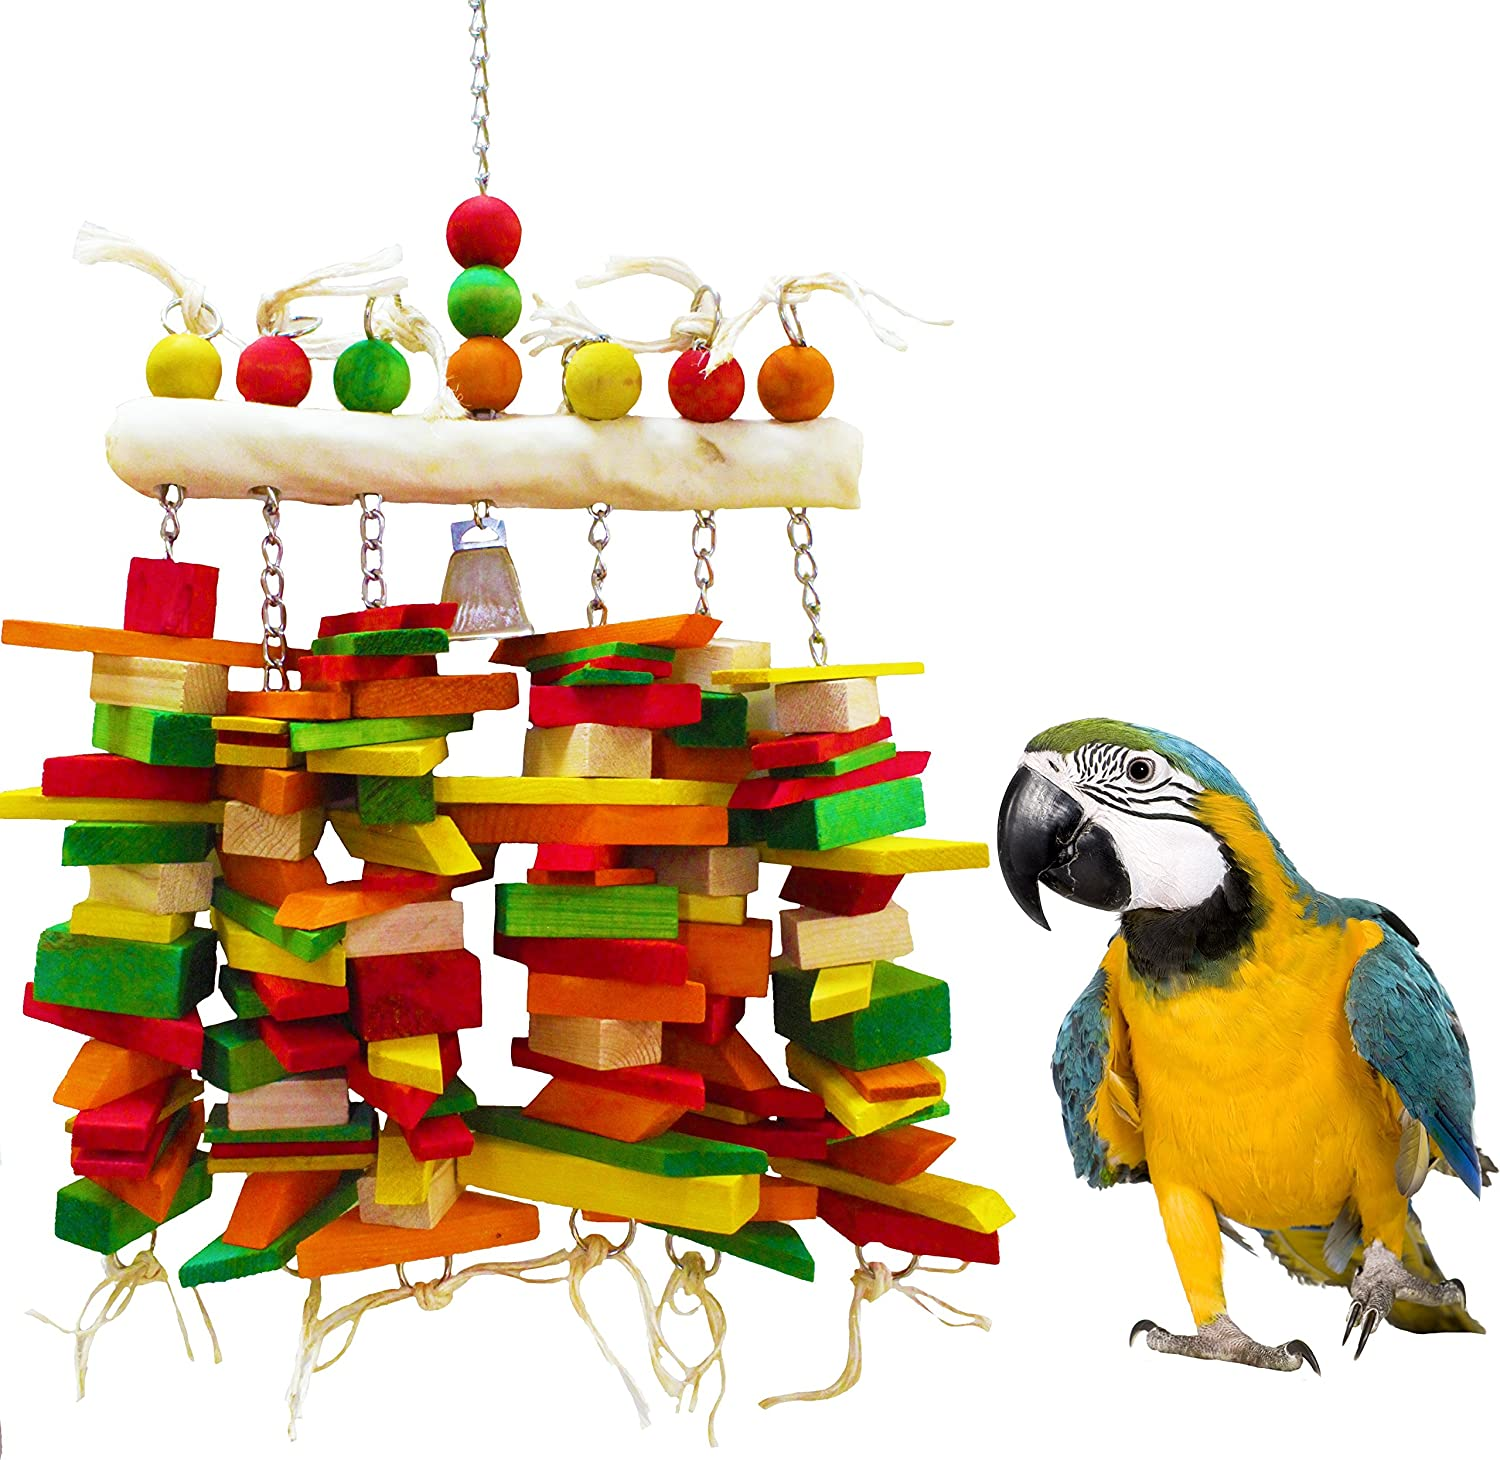 1381 Huge Bone Bridge Bird Toy Parrot Toys Cages African Grey Macaw Cockatoo 917t4zBt2BbLSL1500_